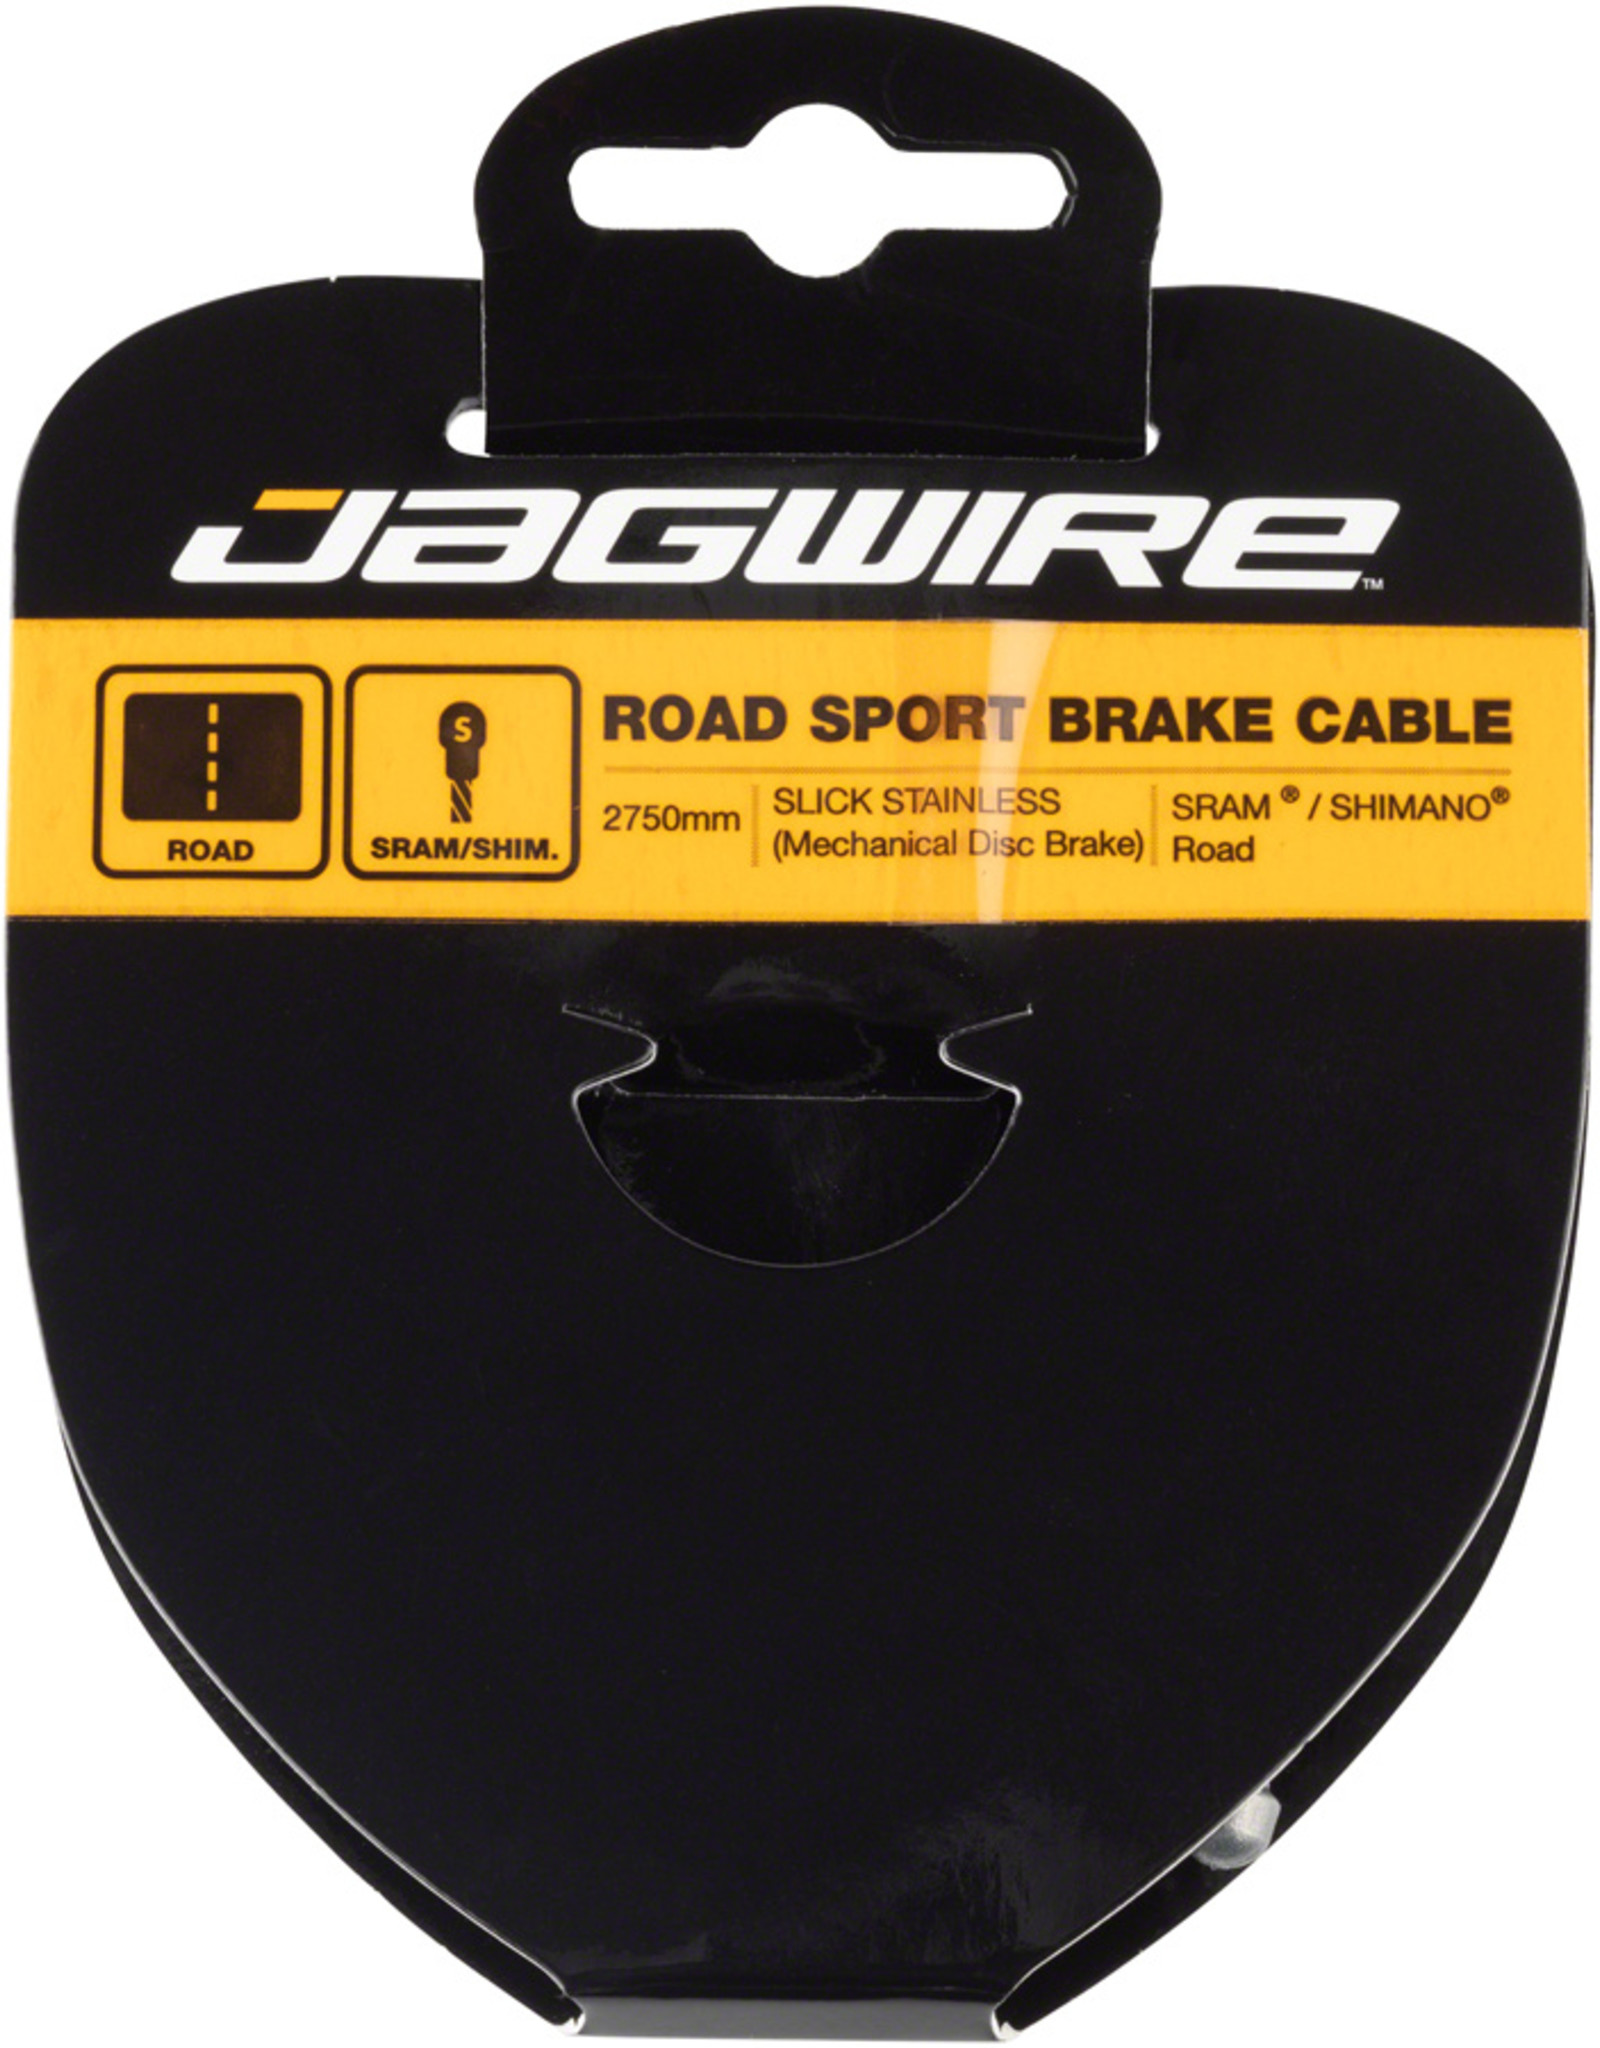 Jagwire Sport Brake Cable Slick Stainless 1.5x2750mm SRAM/Shimano Road Tandem